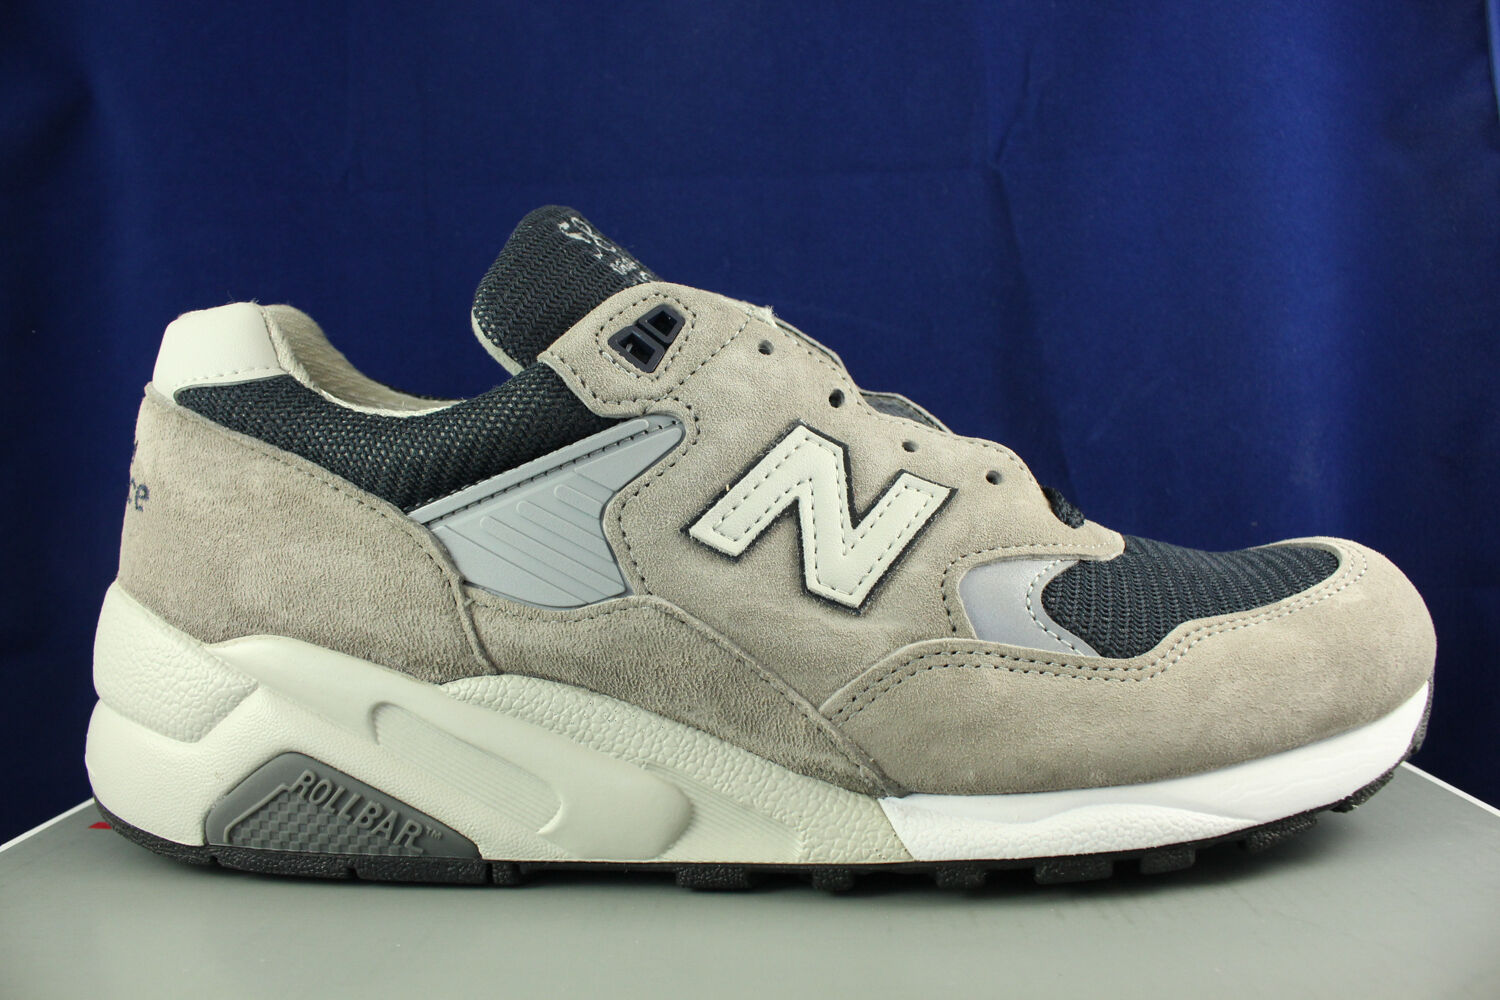 NEW BALANCE 585 BRINGBACK MADE IN USA GREY NAVY blueE M585GR SZ 7